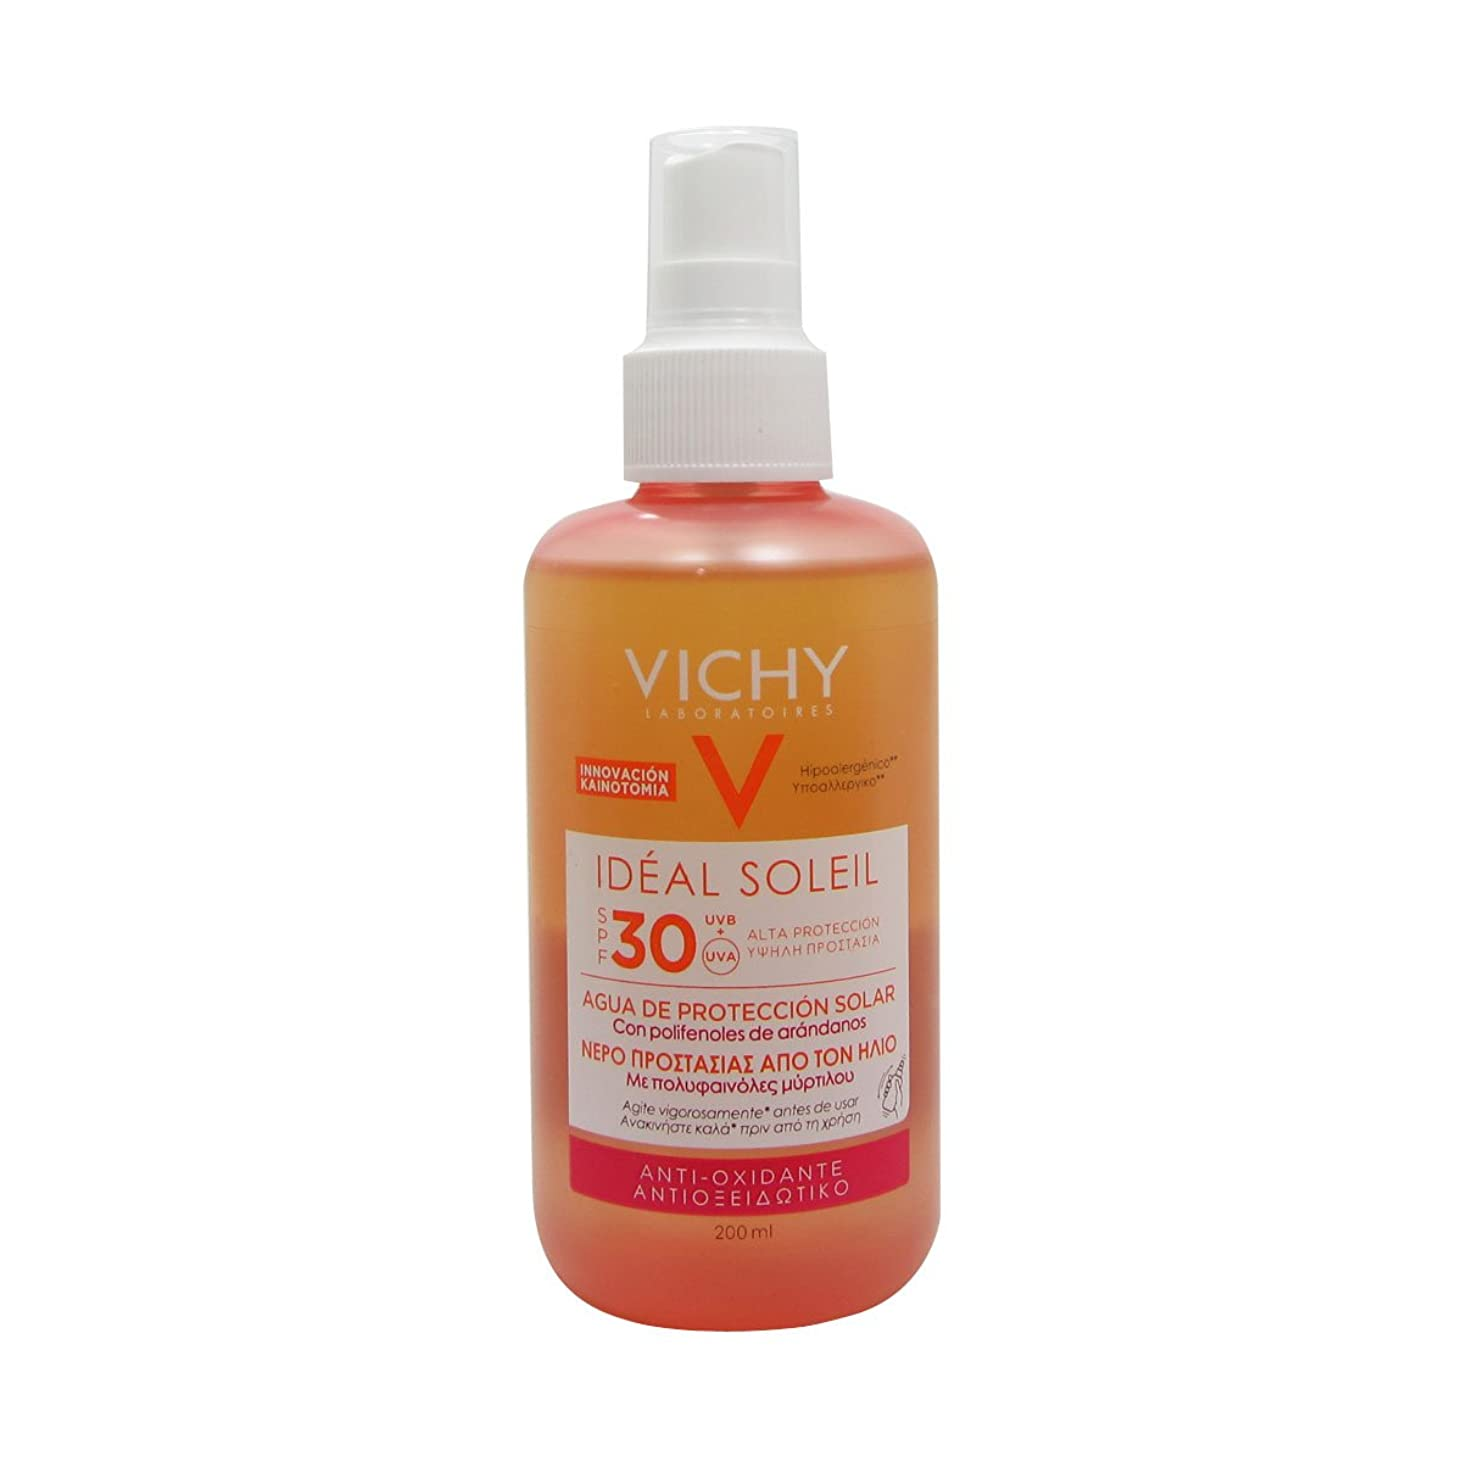 シャイ抽出推進力Vichy Ideal Soleil Fresh Water Sun Protection Spf30 200ml [並行輸入品]